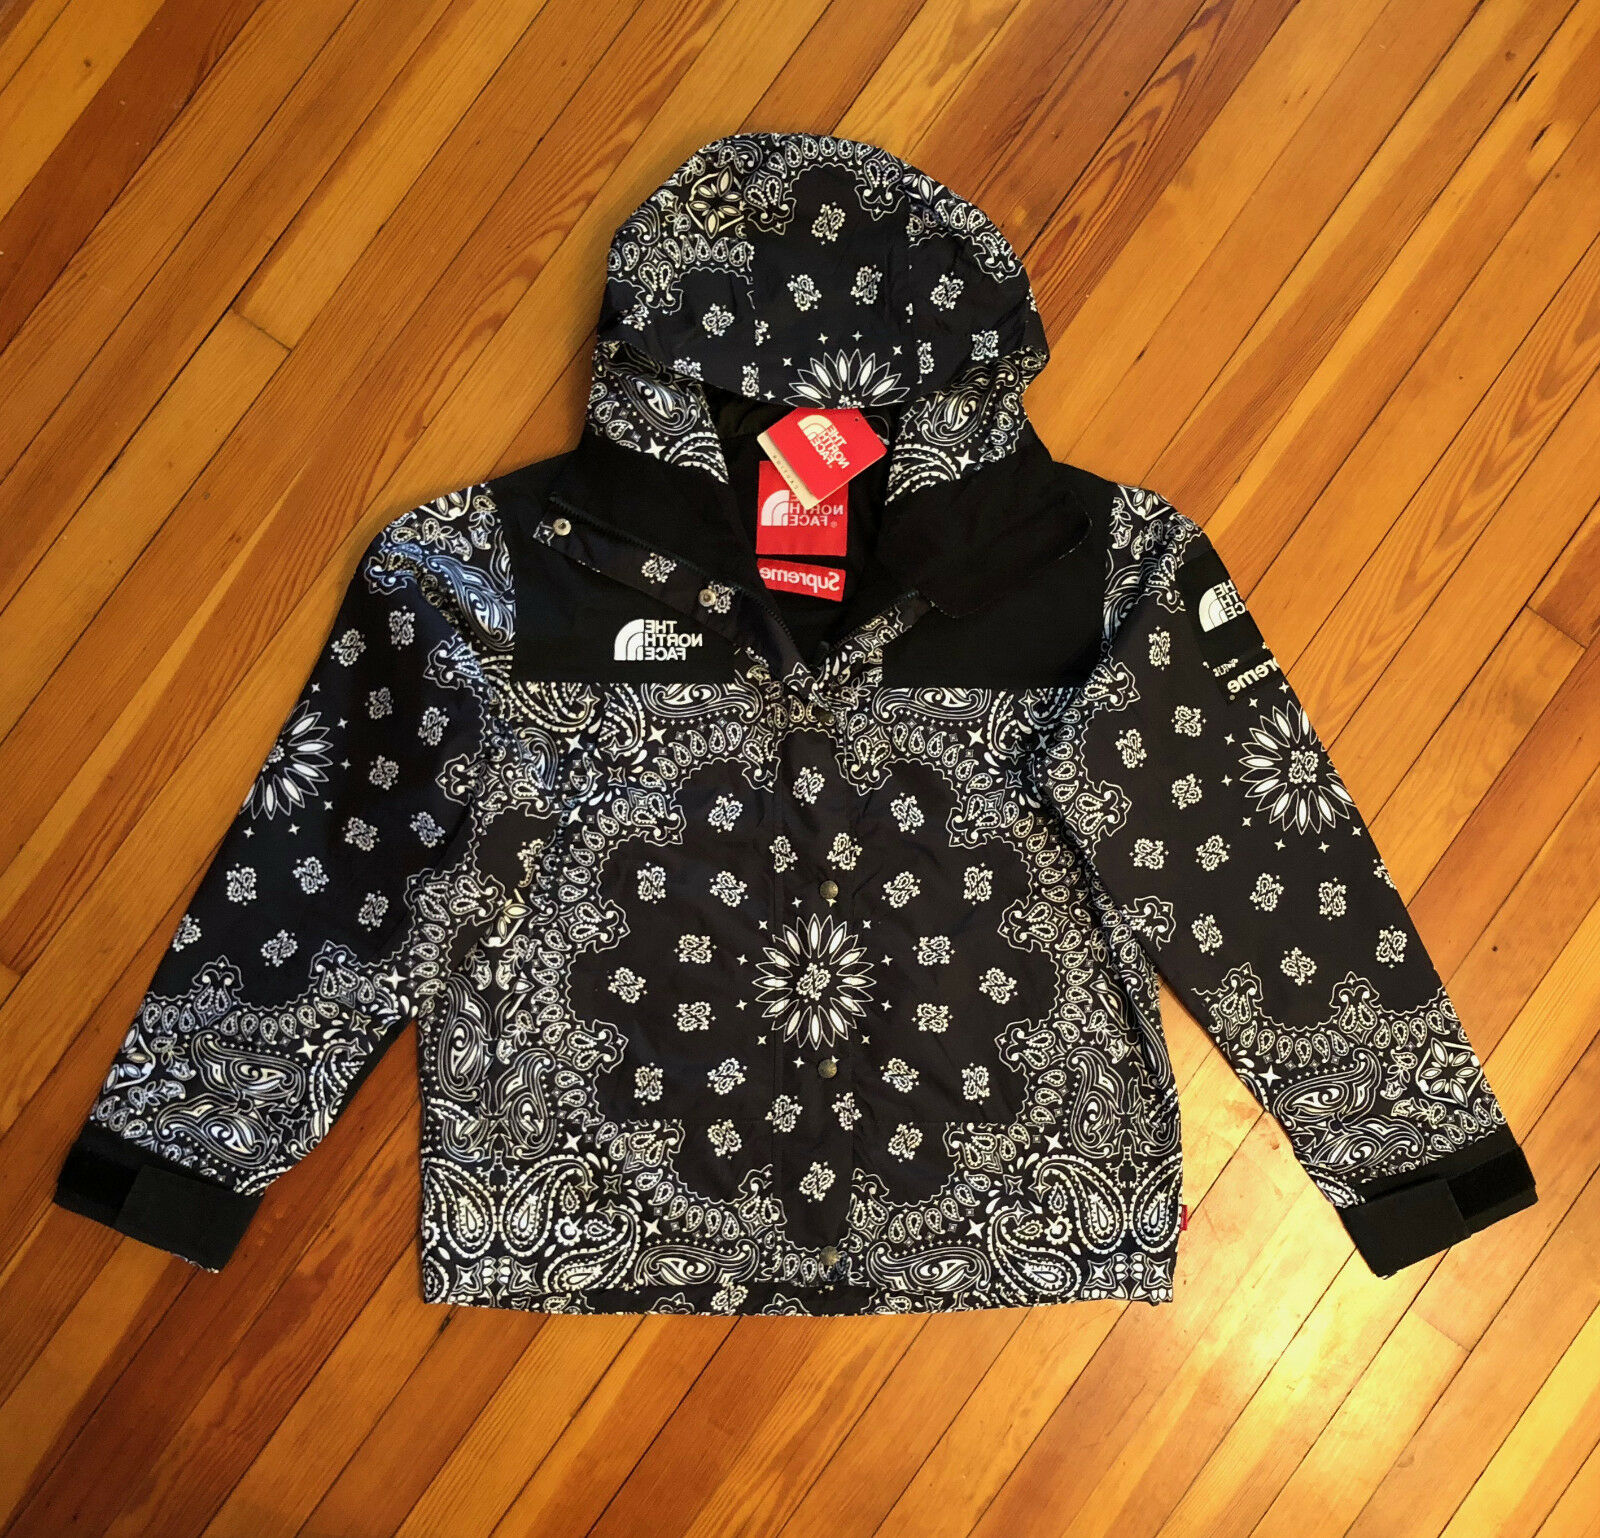 ff9d6255 ... switzerland ua supreme x the north face paisley bandana black mountain  parka jacket s m l item number ...